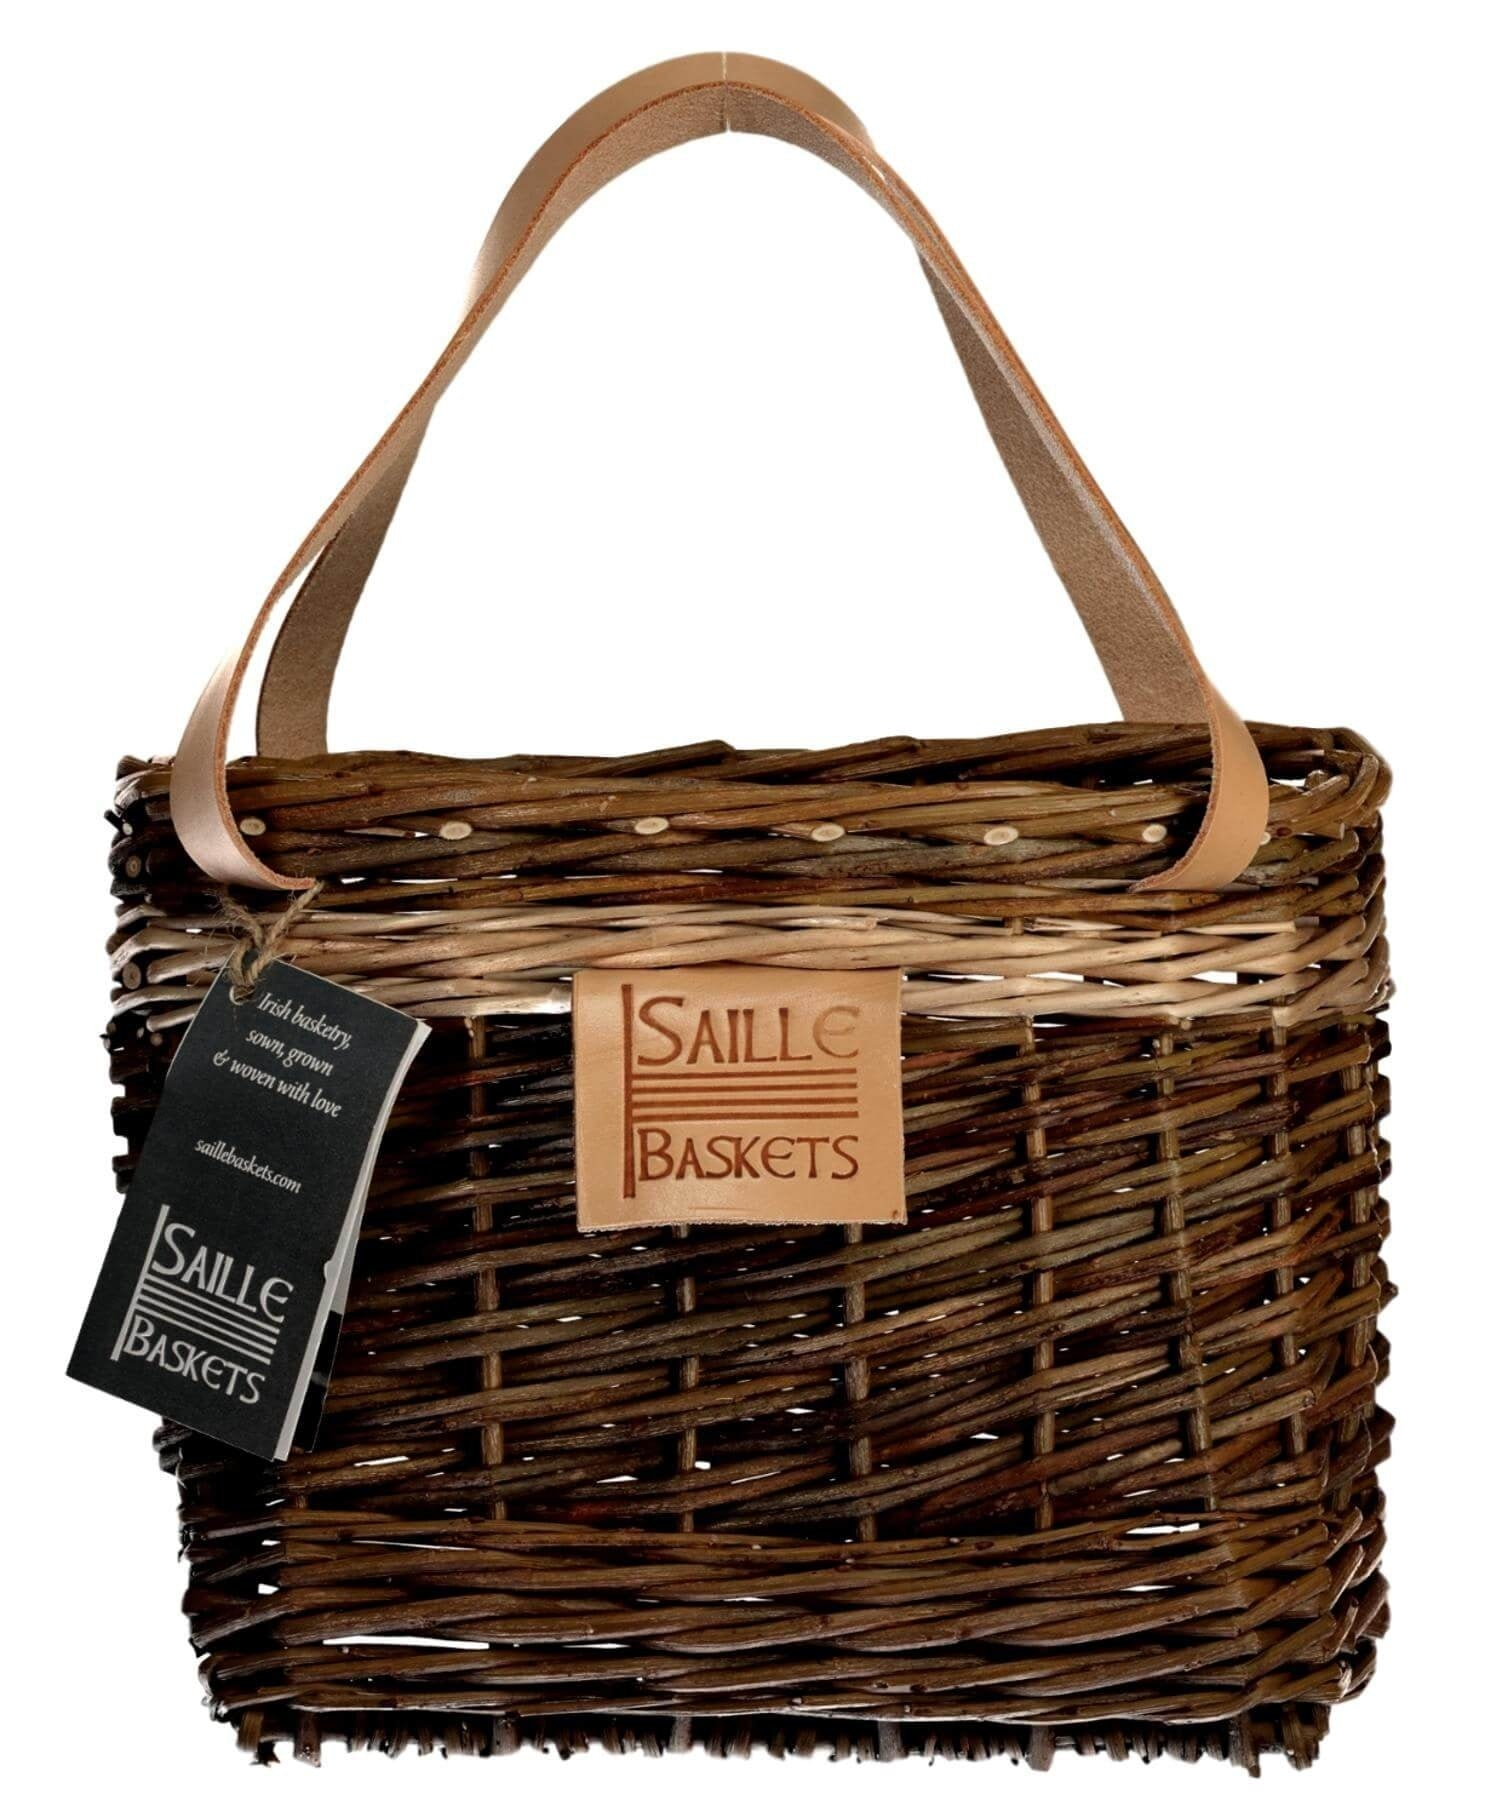 Lunch Pouch - Light Brown Saille Baskets Wood & Slate